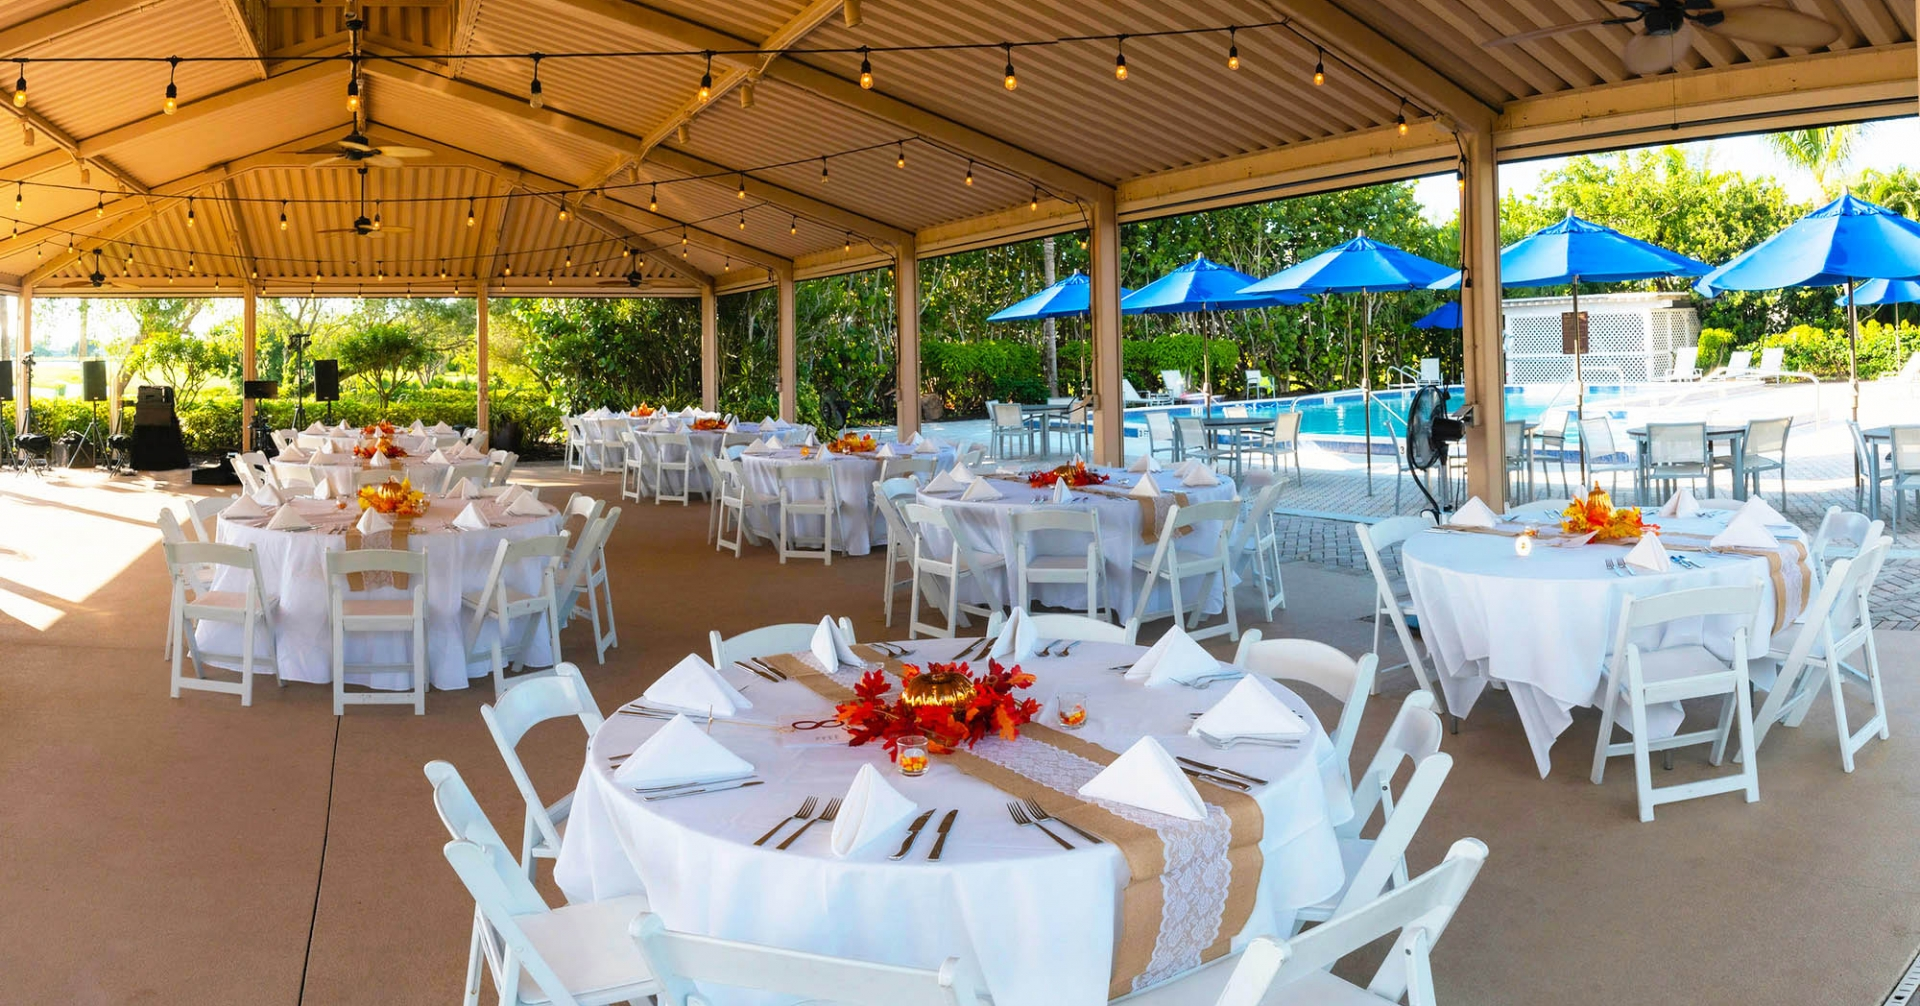 Outdoor event dining at the Dunes